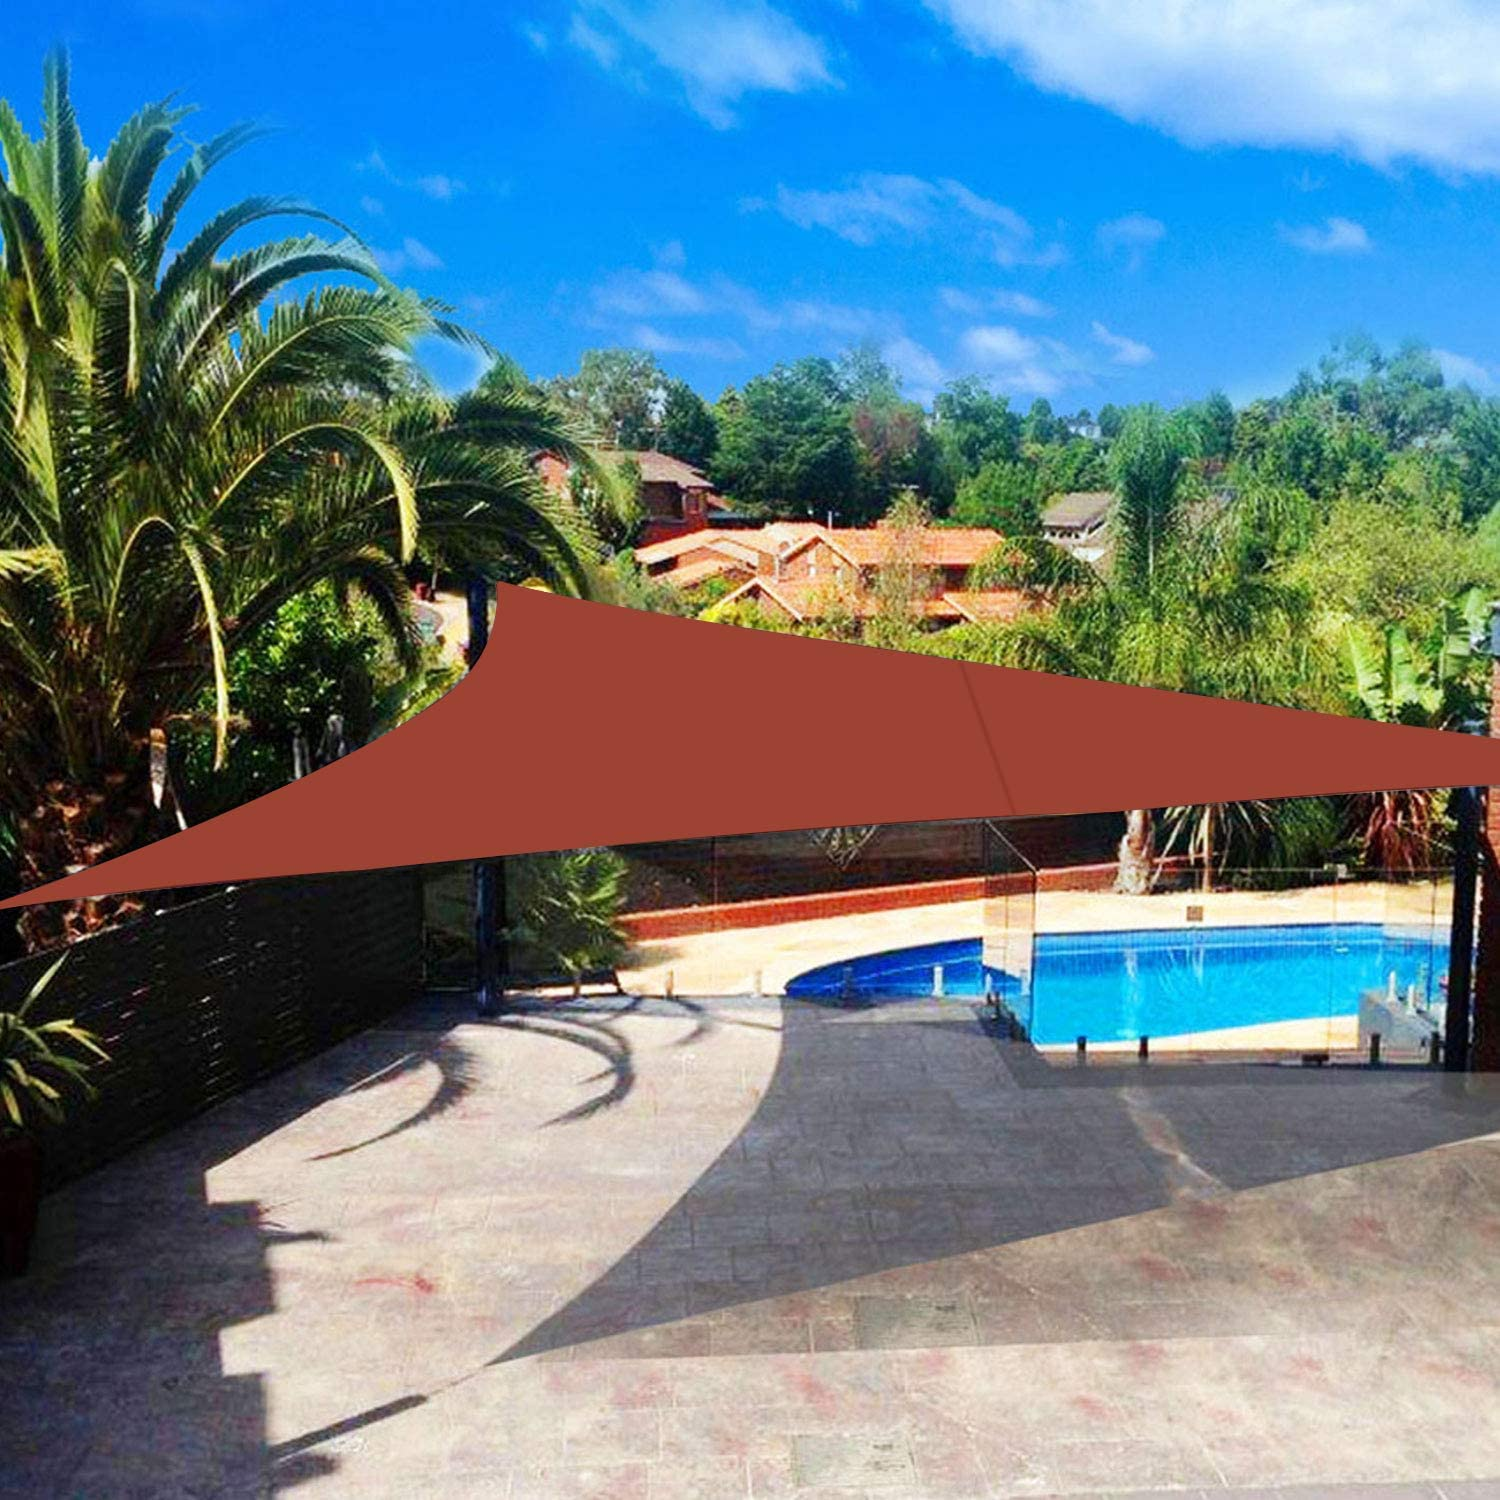 Shade&Beyond Sun Shade Sail Triangle 20'x20'x20' UV Block for Yard Patio Lawn Garden Deck Rust Red Color